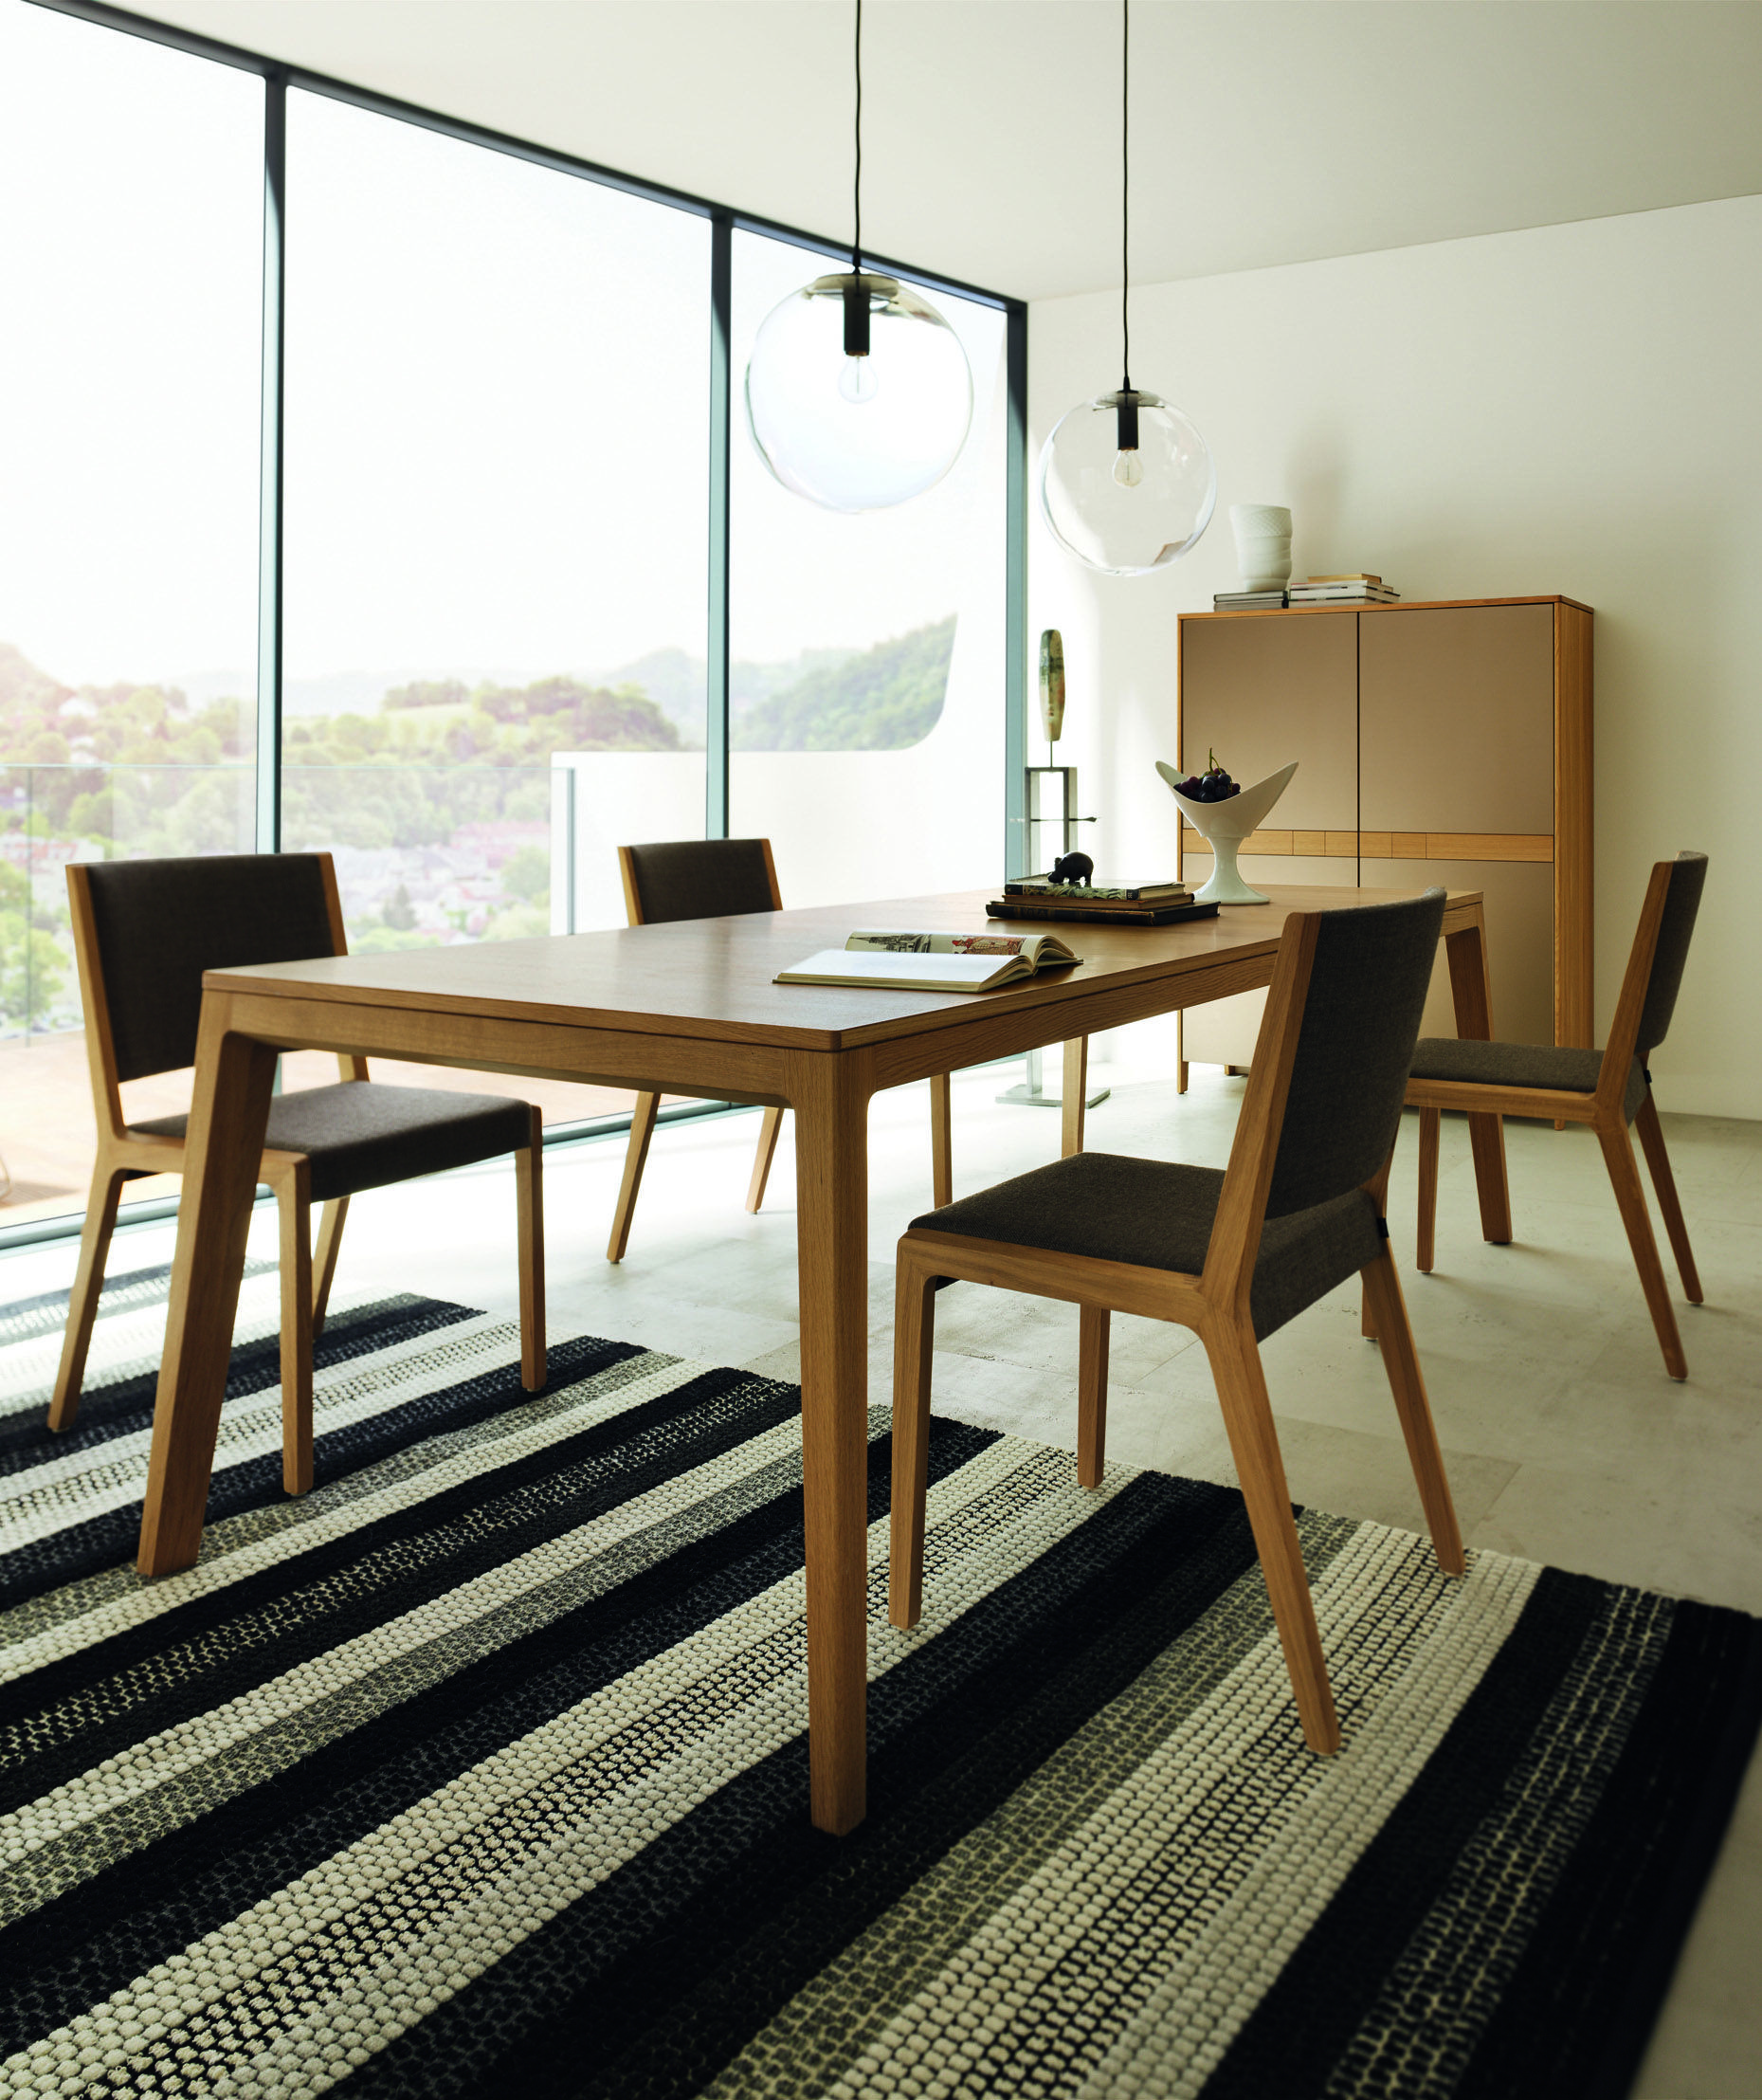 Mylon dining table by TEAM7 starts @ $2968 CAD for solid wood and a ...